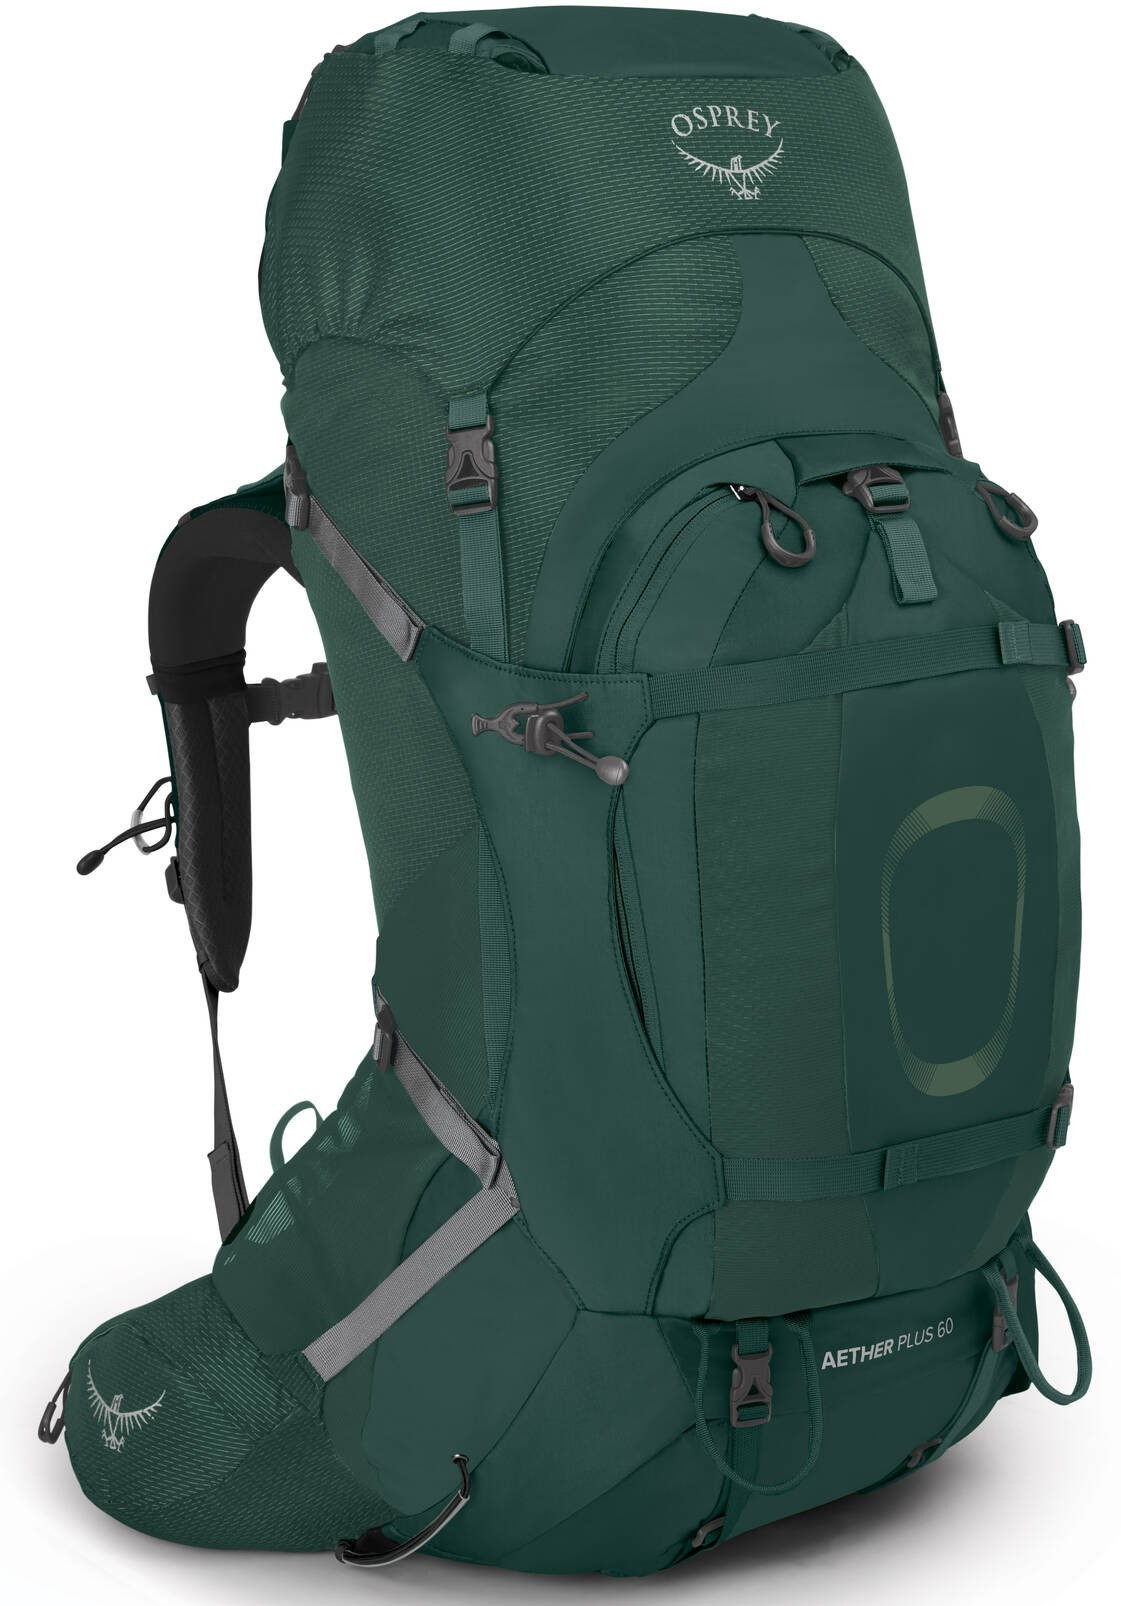 Aether AG Рюкзак туристический Osprey Aether Plus 60 Axo Green Aether_Plus60_S21_Side_Axo_Green_web.jpg